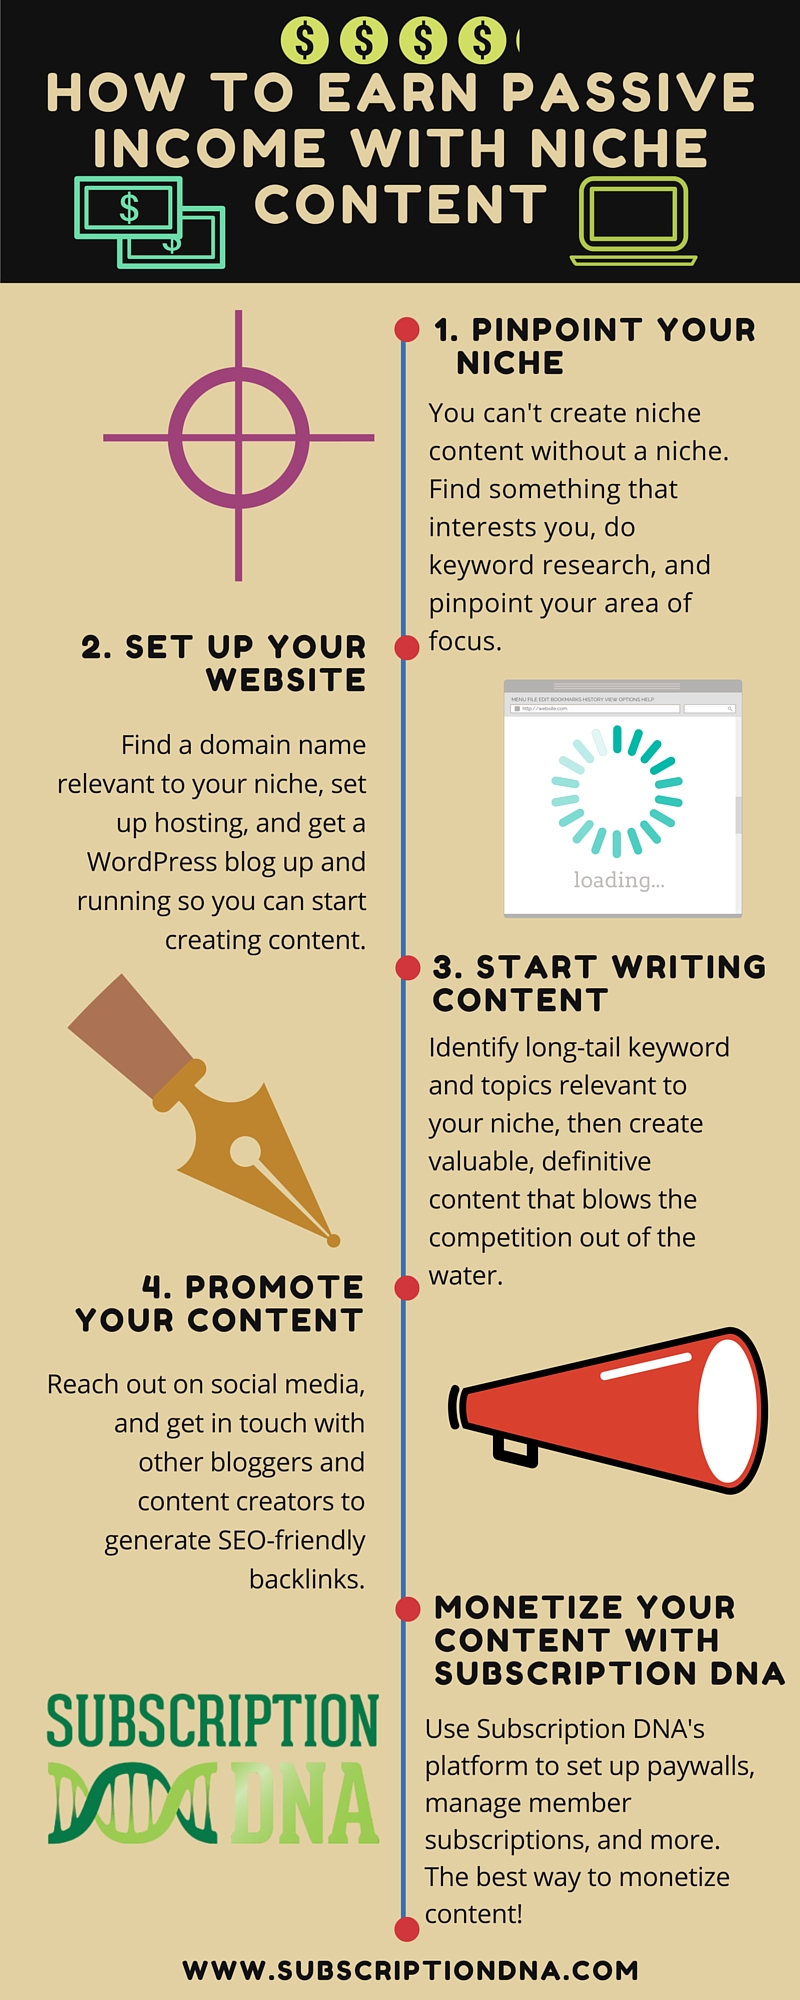 How to Earn Passive Income with a Niche Website #infographic #Make Money #Earn Passive Income #infographics # How to Earn #How to Make Money #Infographic #Niche Website